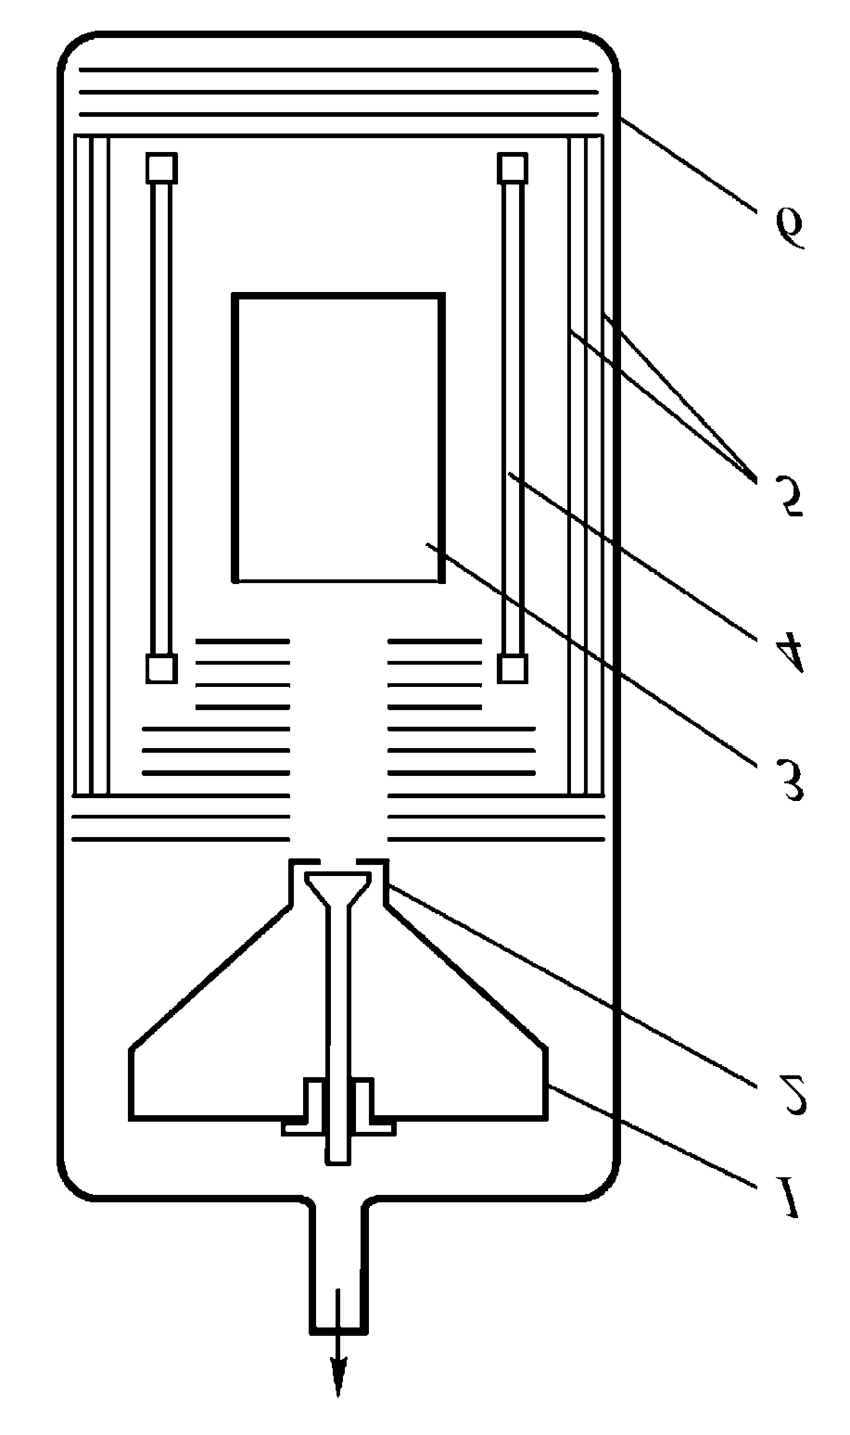 medium resolution of diagram of setup used for melting quartz glass with layered filling of the crucible 1 conical hopper 2 powder dispenser 3 crucible